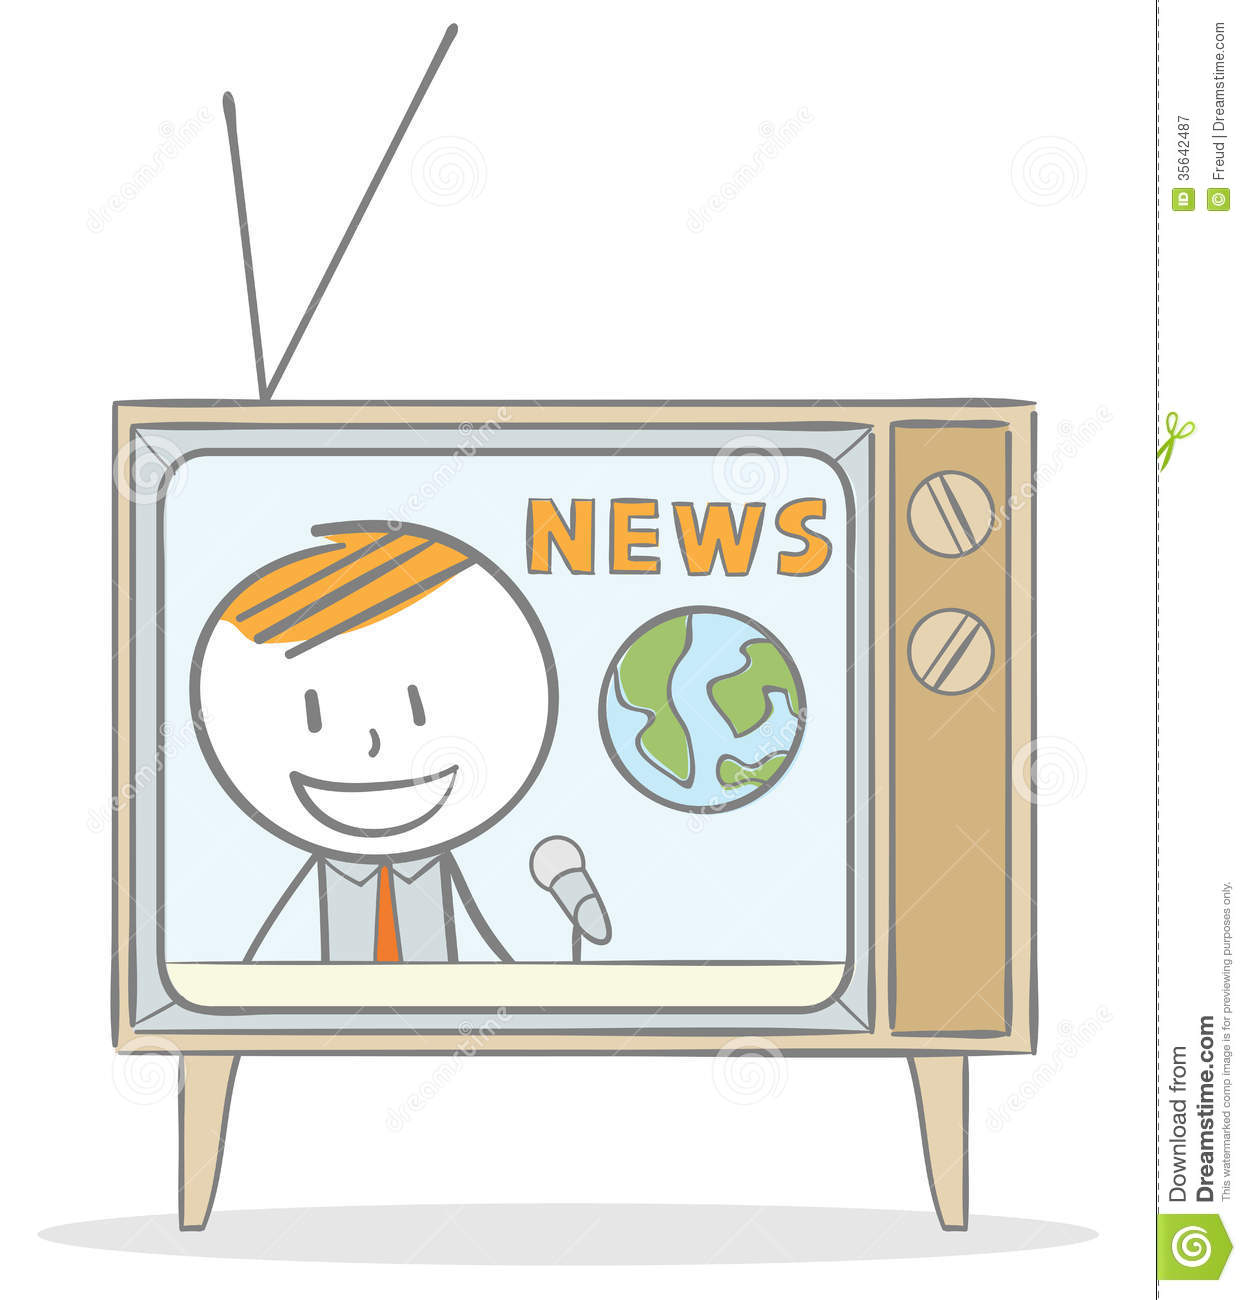 news clipart images - photo #12